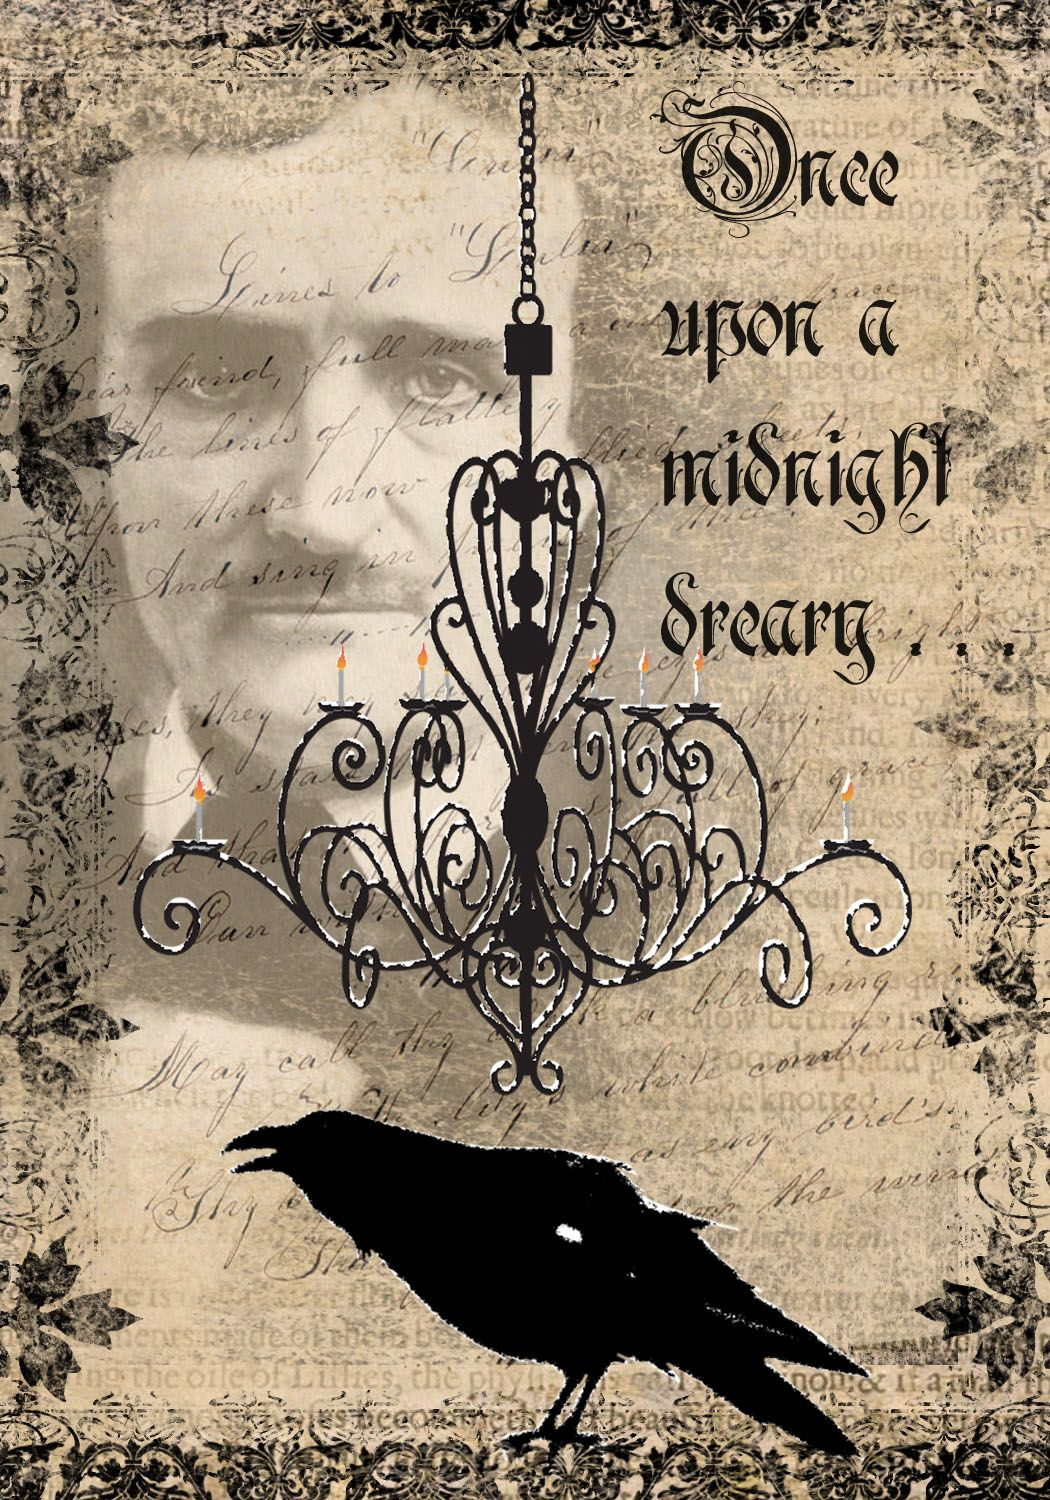 17 best images about edgar allan poe the raven 17 best images about edgar allan poe the raven edgar allen poe musicals and poem